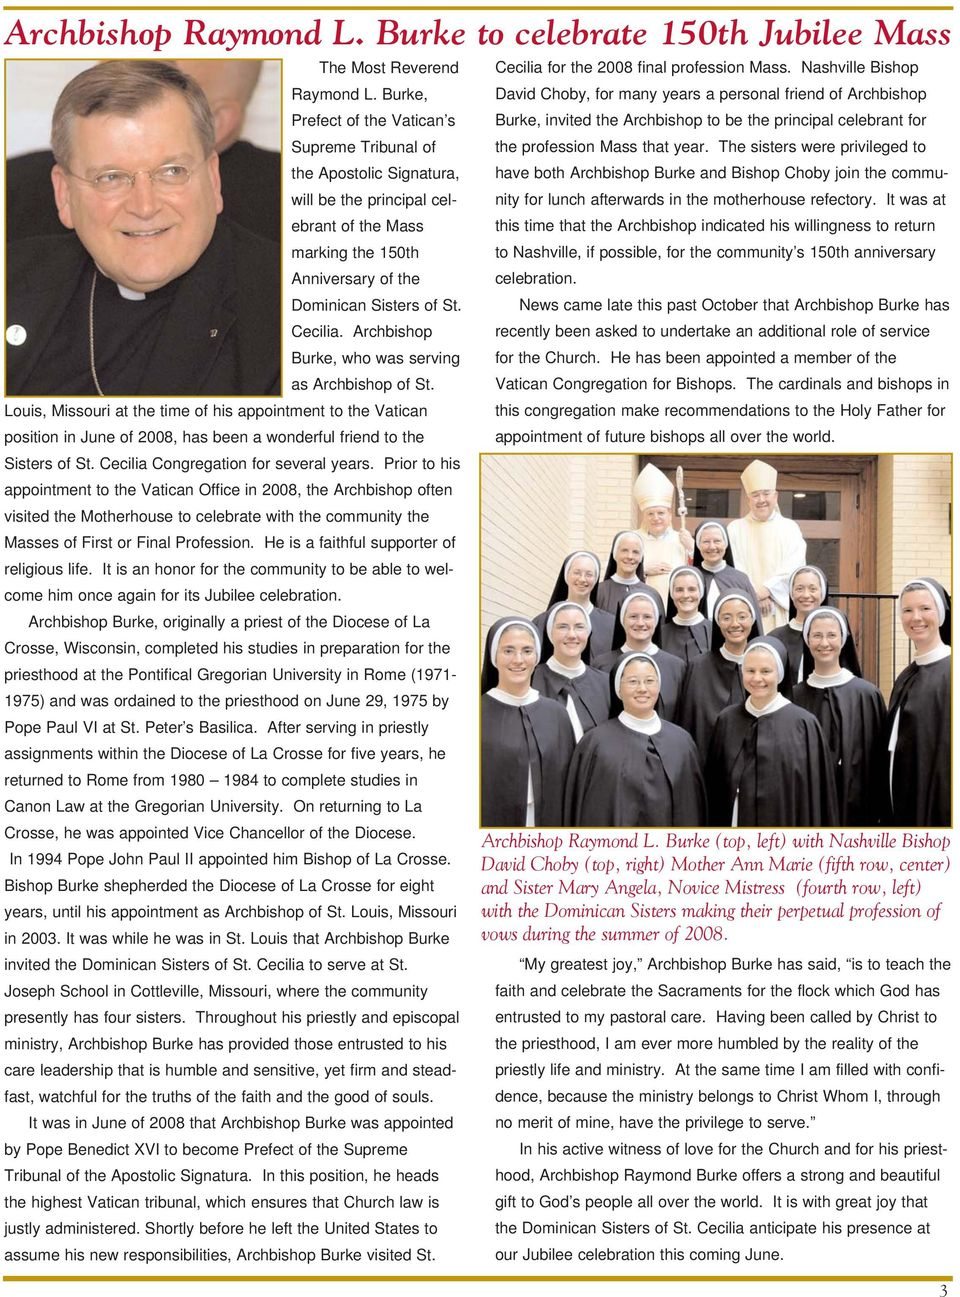 Archbishop Burke, who was serving as Archbishop of St. Louis, Missouri at the time of his appointment to the Vatican position in June of 2008, has been a wonderful friend to the Sisters of St.